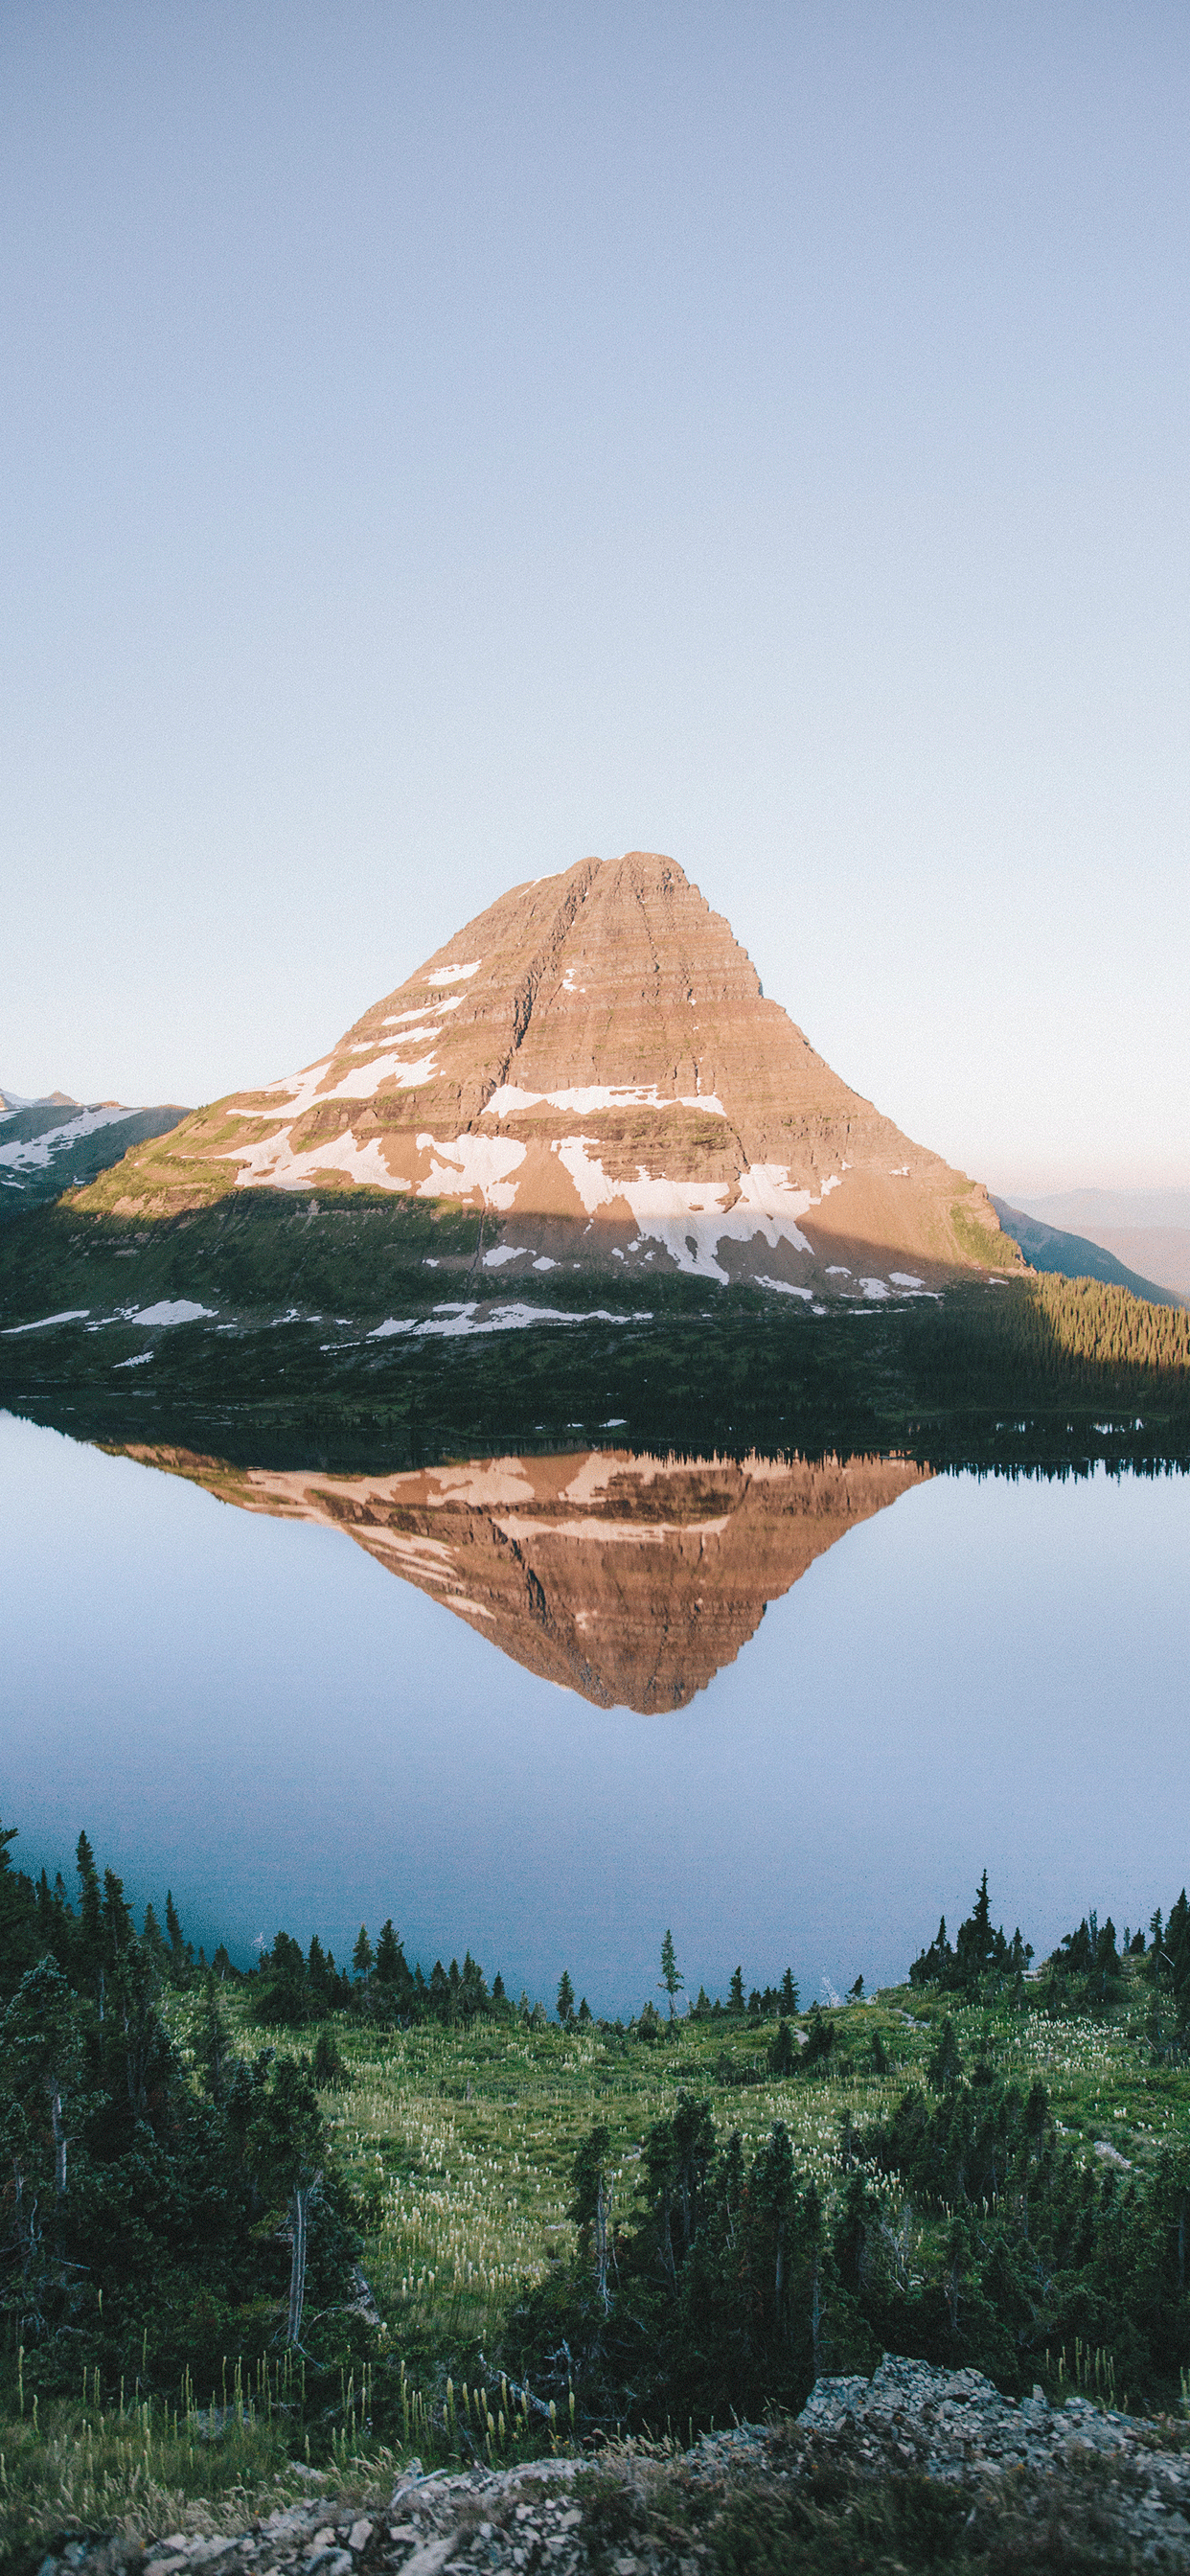 iPhone wallpapers mountain glacier national park Fonds d'écran iPhone du 25/06/2019